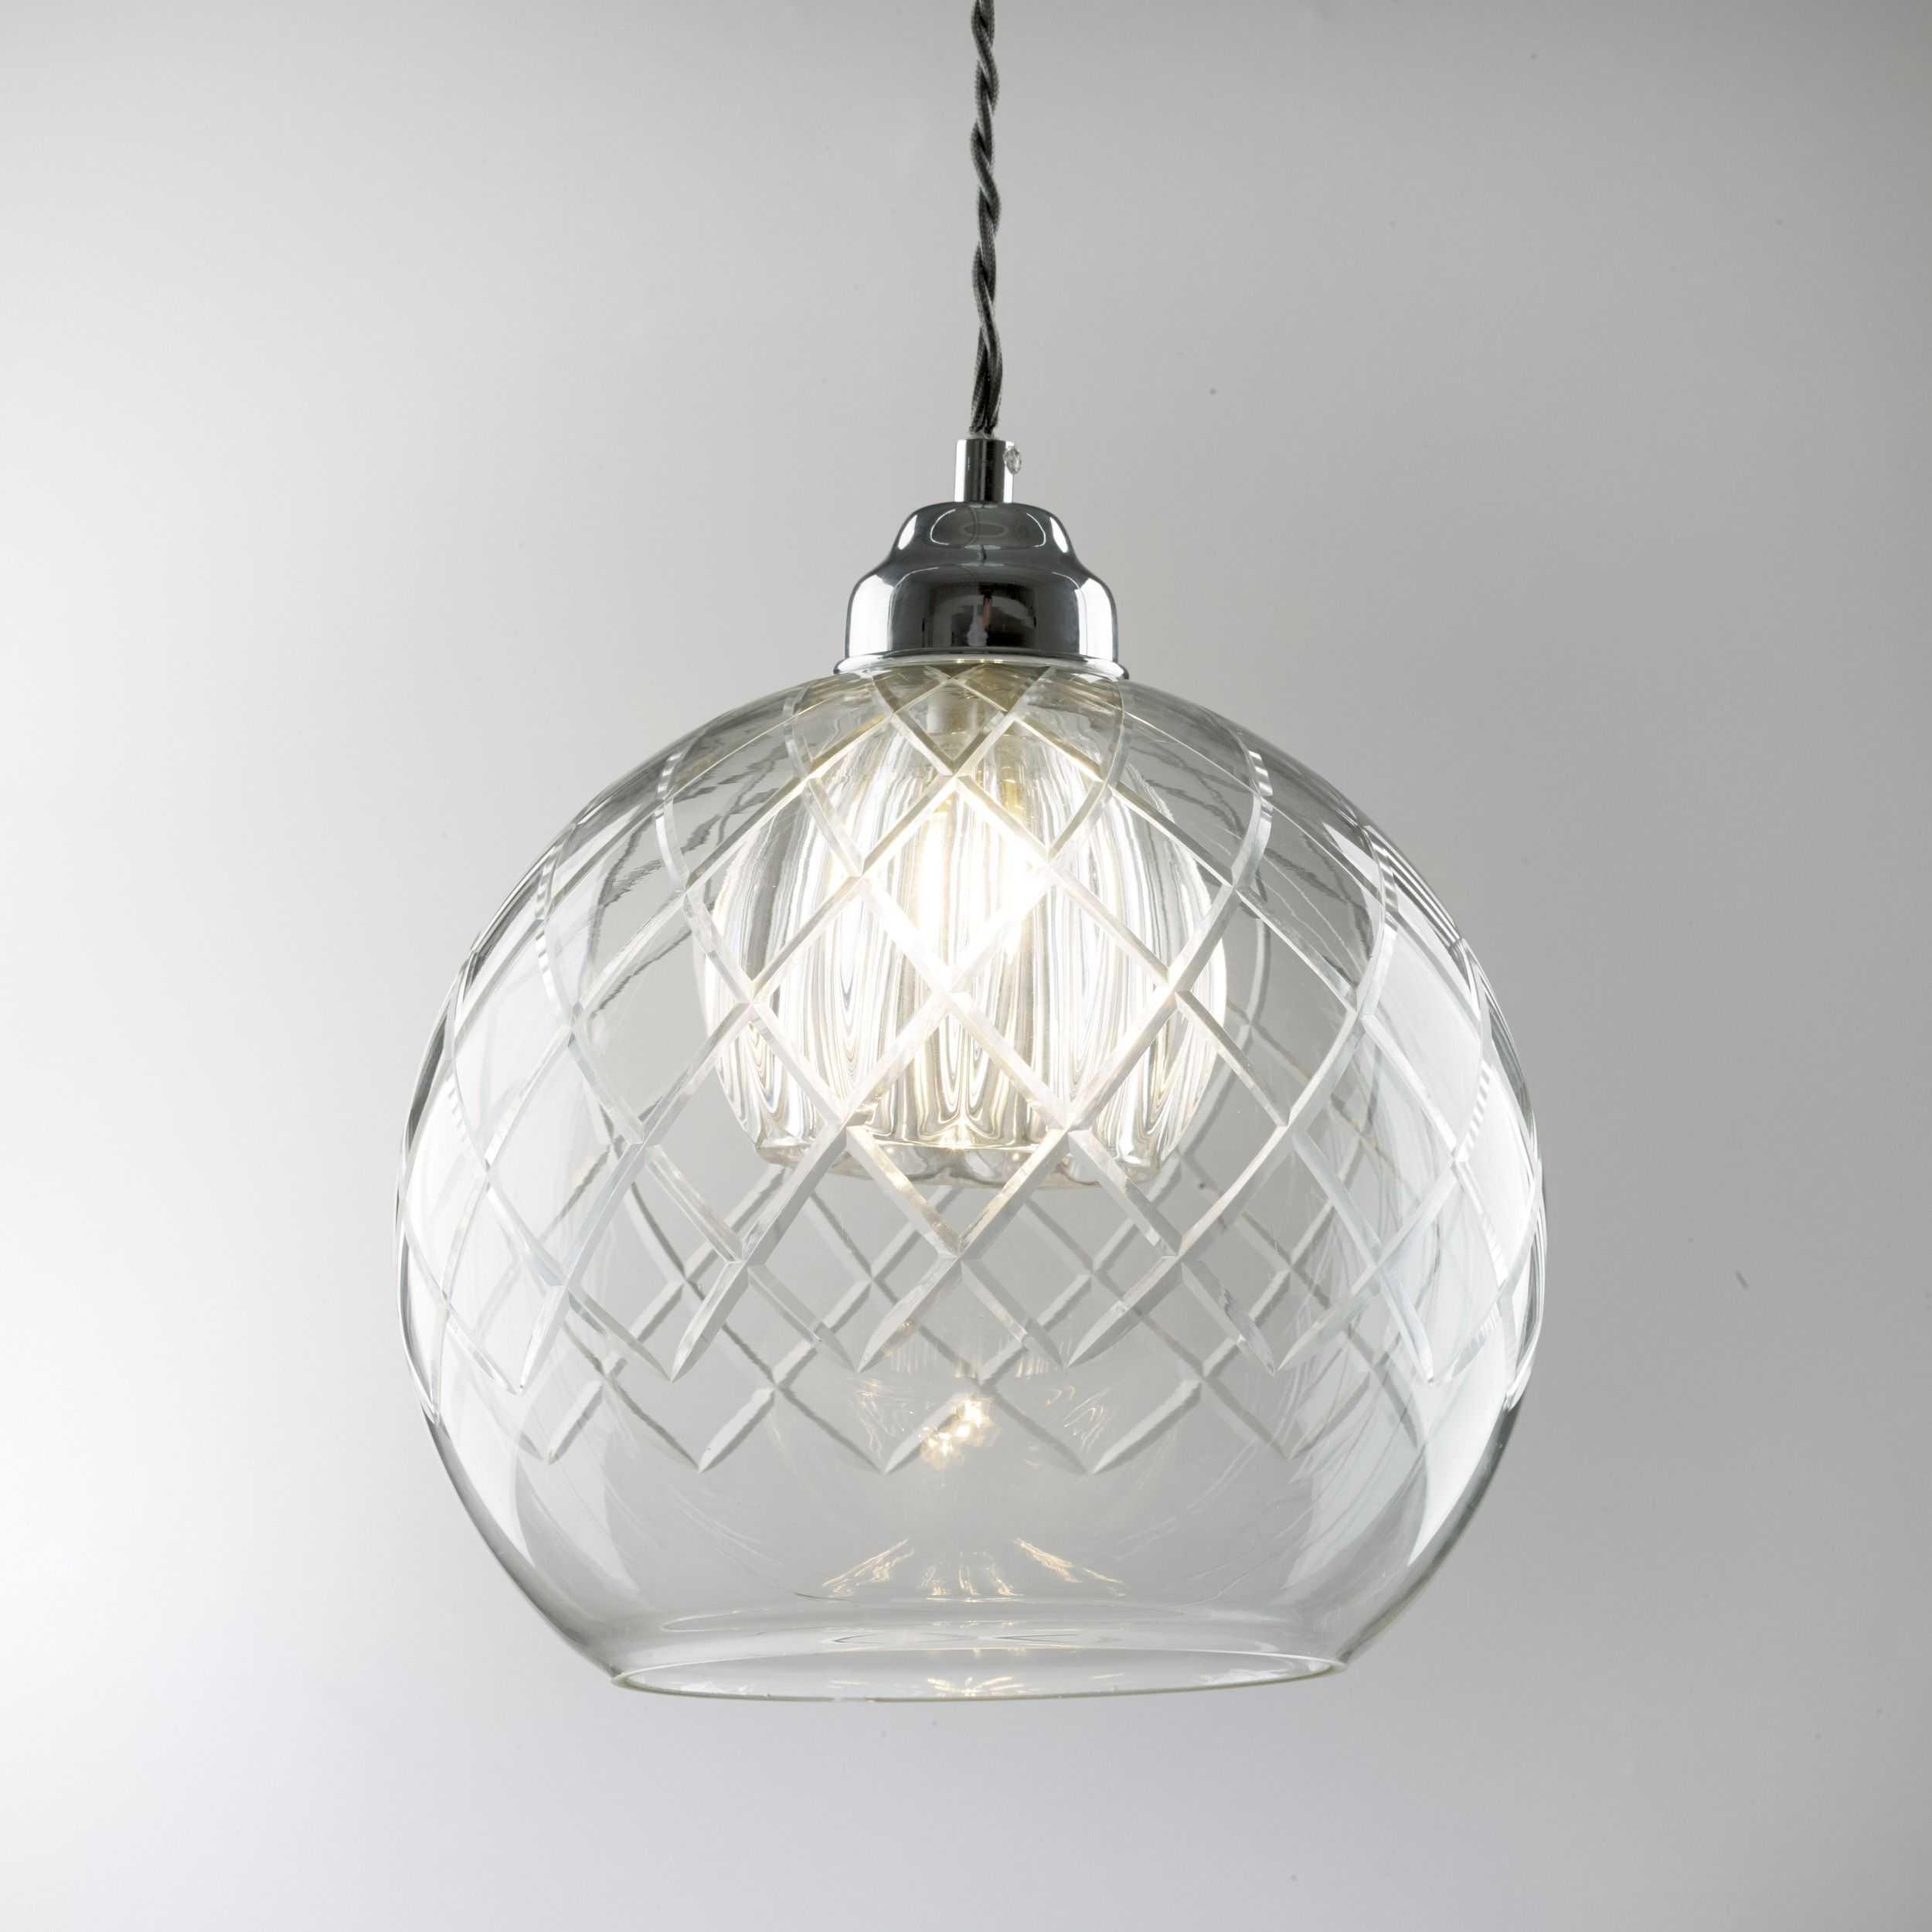 Gabby Glass Ceiling Pendant Light This stunning glass ceiling